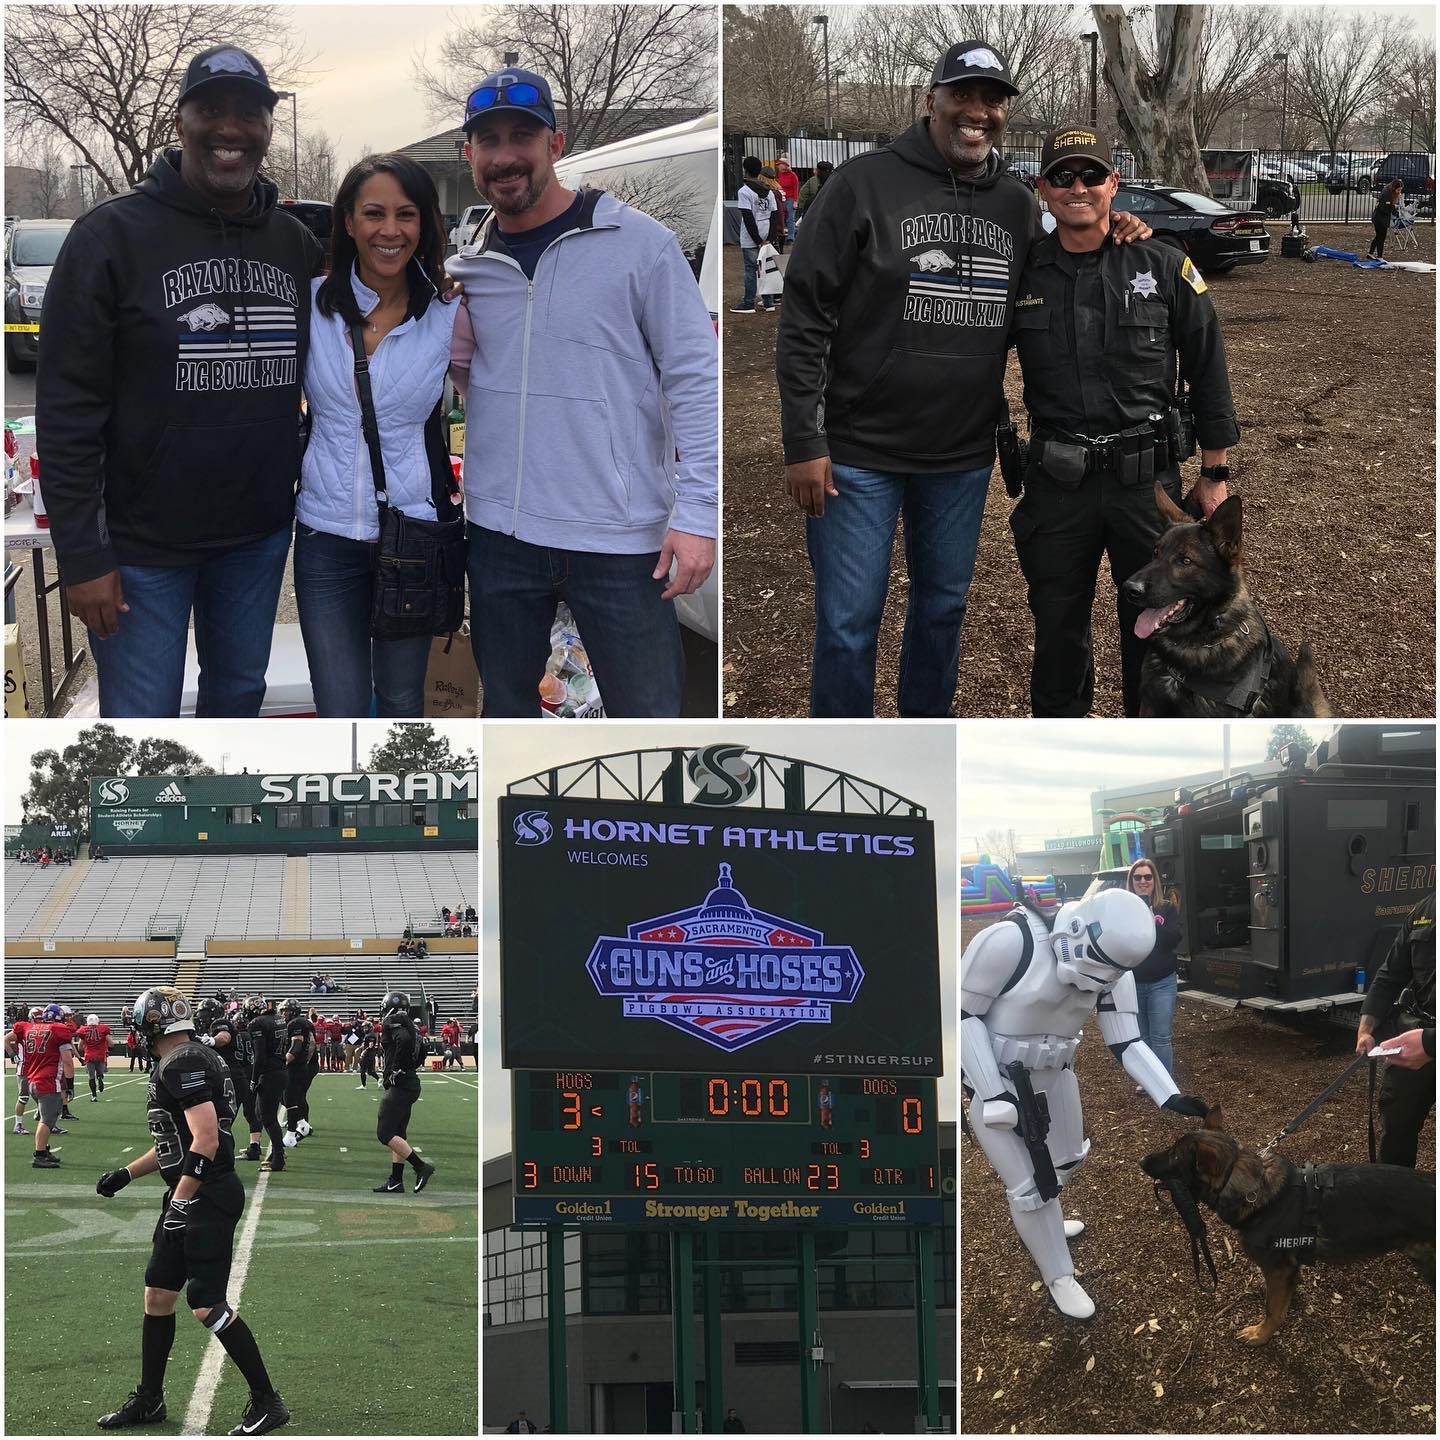 Thanks to my colleagues, Assemblymember Autumn Burke and Assemblymember Heath Flora, for joining me at the 45th annual Guns & Hoses charity football game.